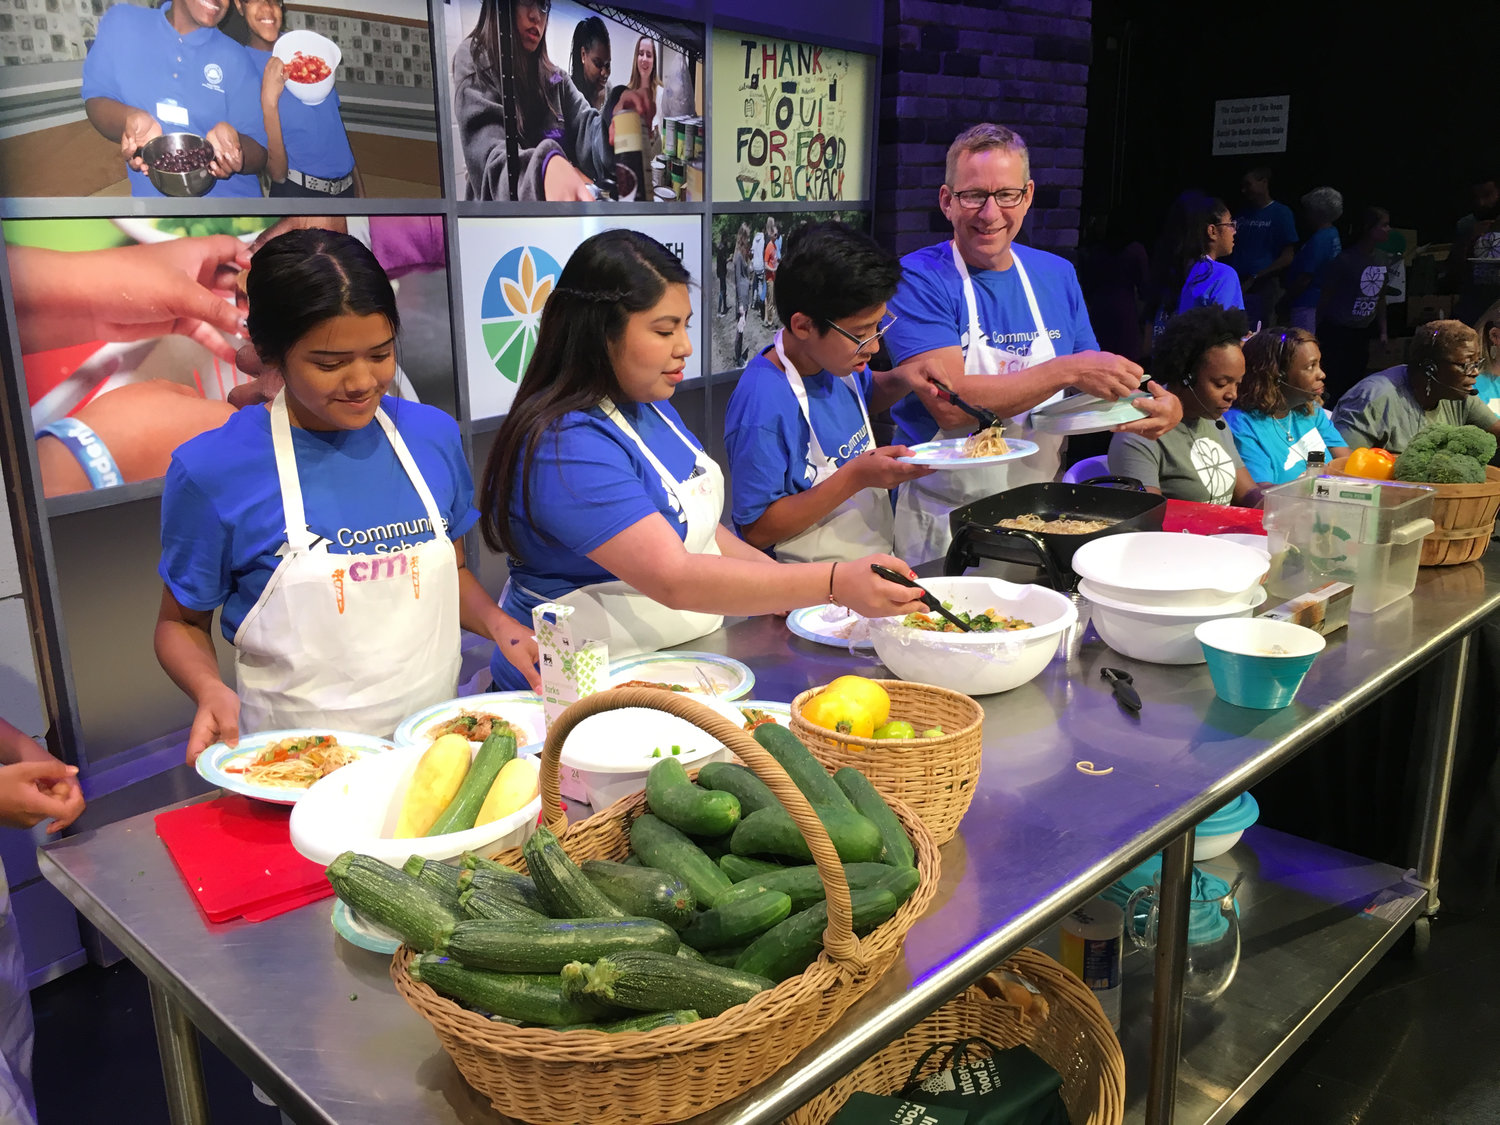 CIS staff and youth are on TV as WRAL raises money for Interfaith Food Shuttle, a partner with Cooking Matters afterschool program at Chatham Middle School.